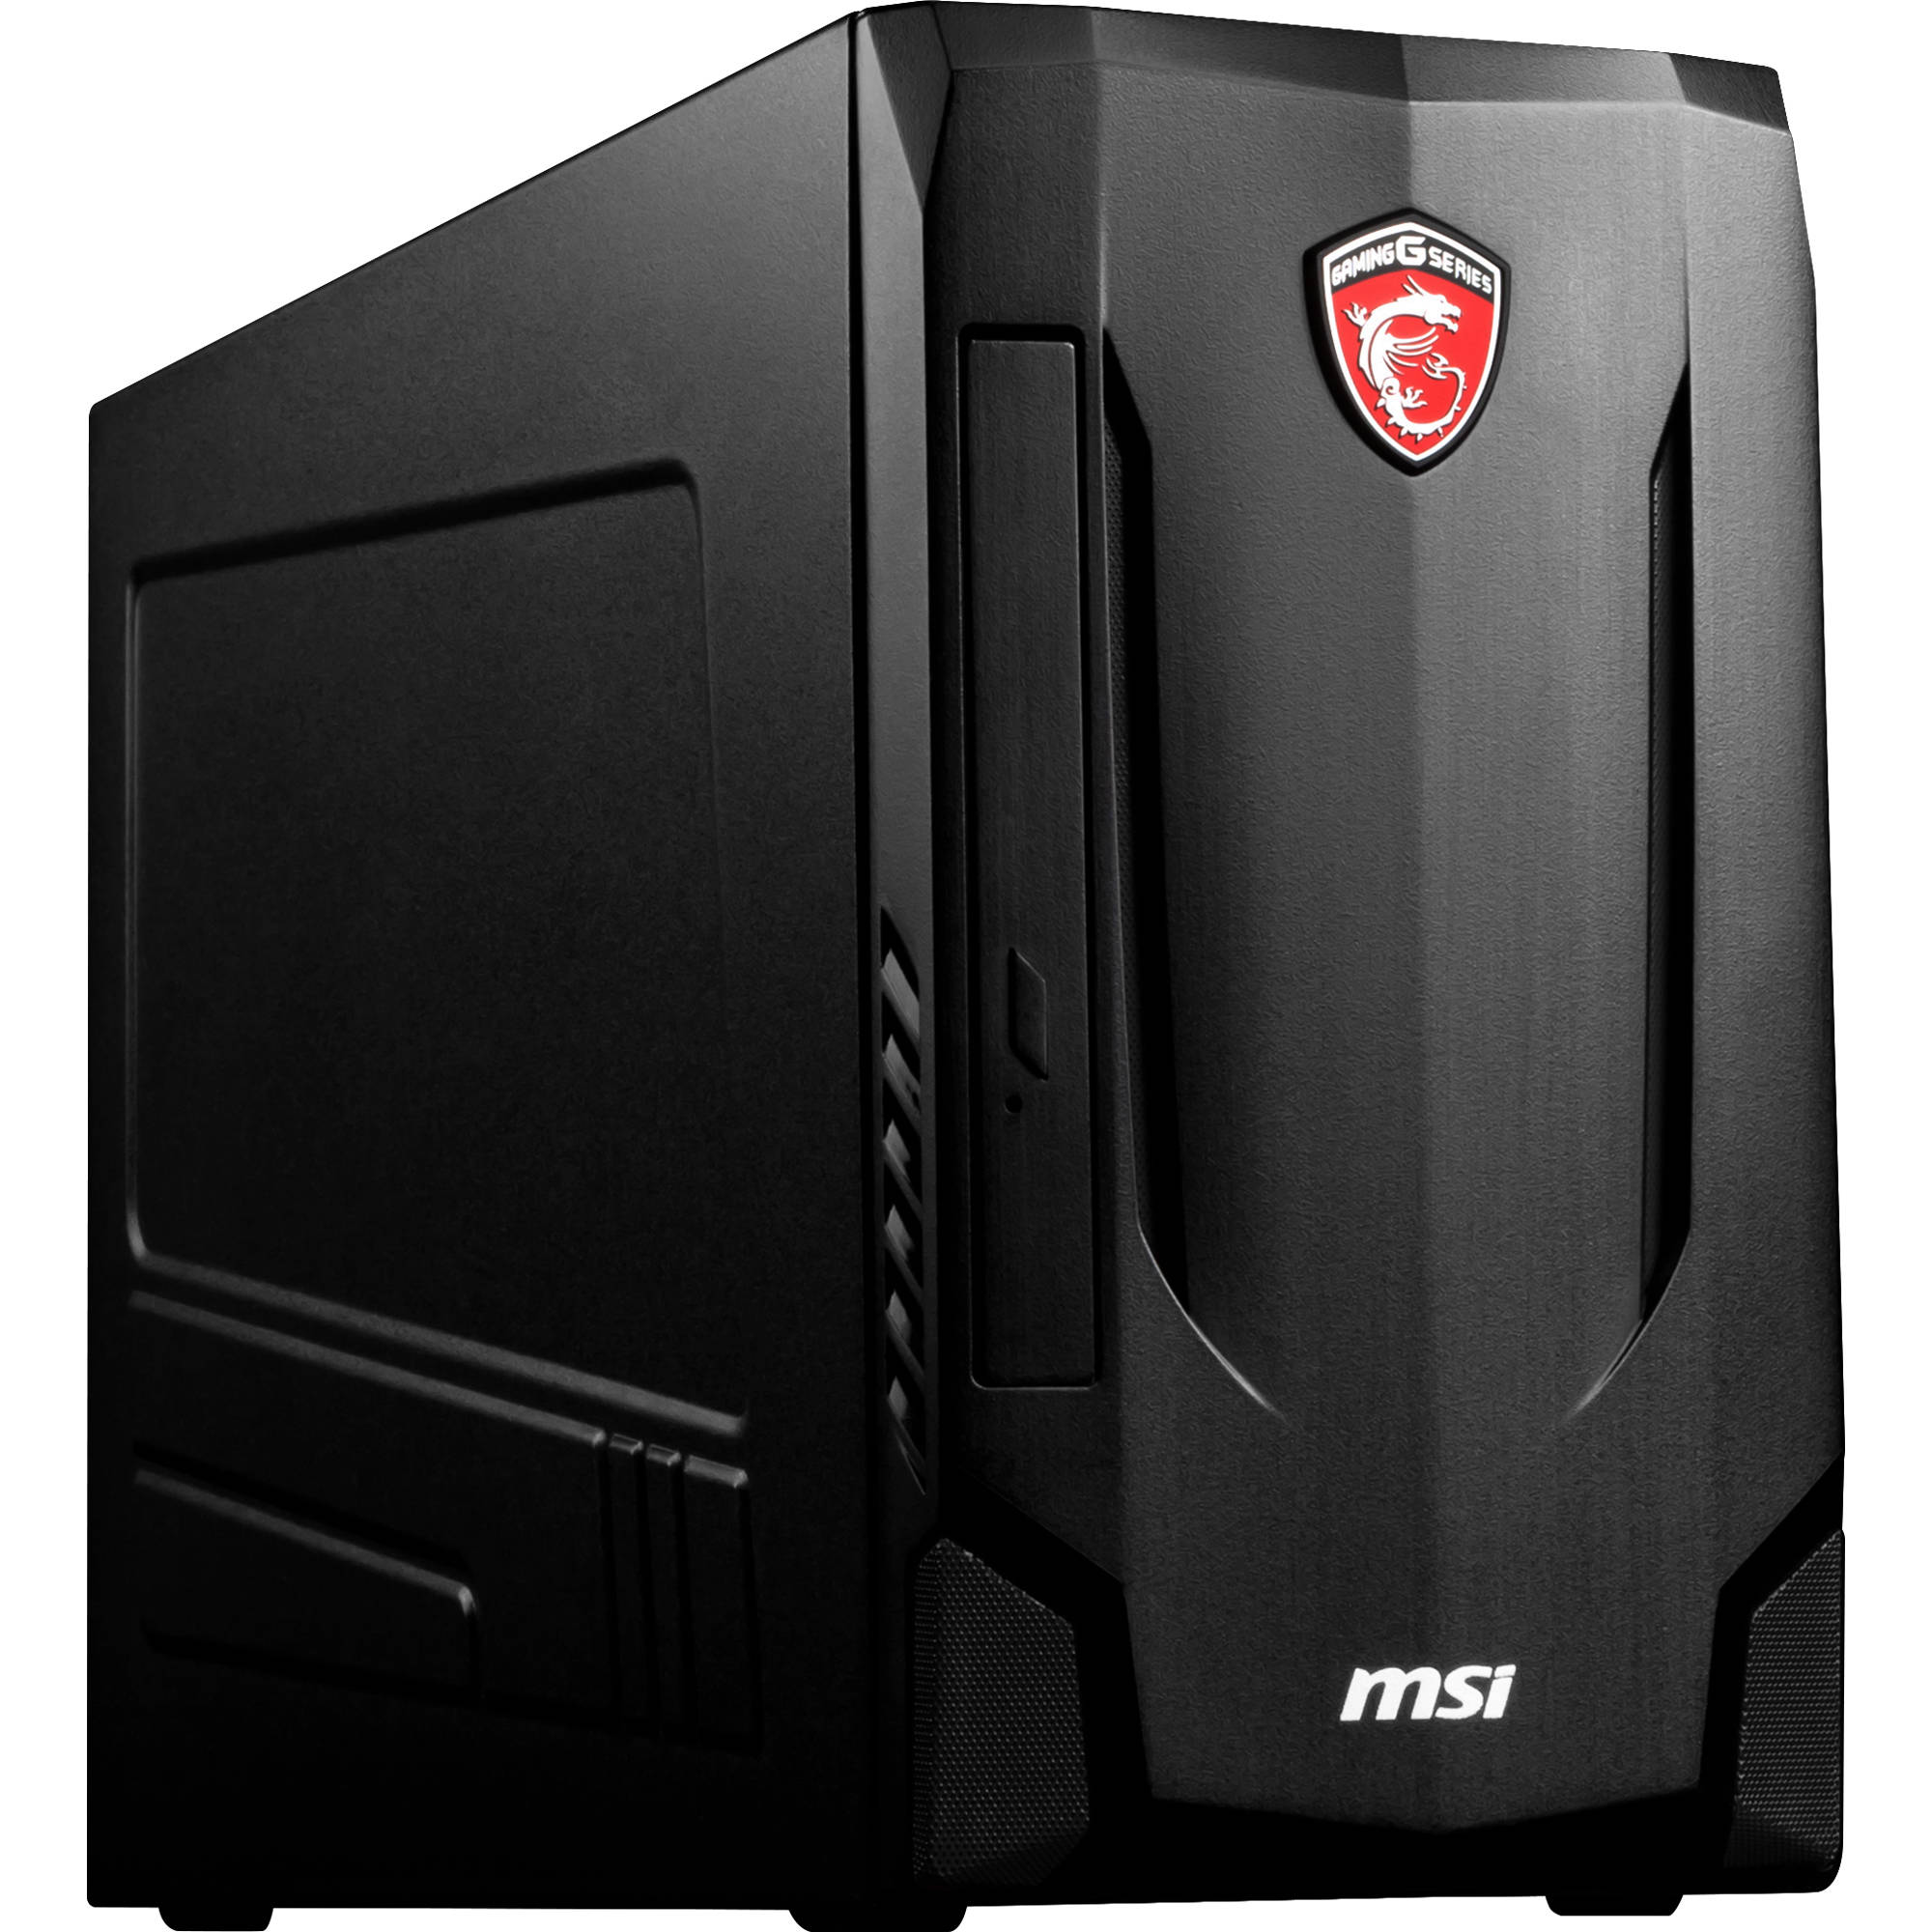 msi nightblade mib gaming desktop computer nightblade mib. Black Bedroom Furniture Sets. Home Design Ideas